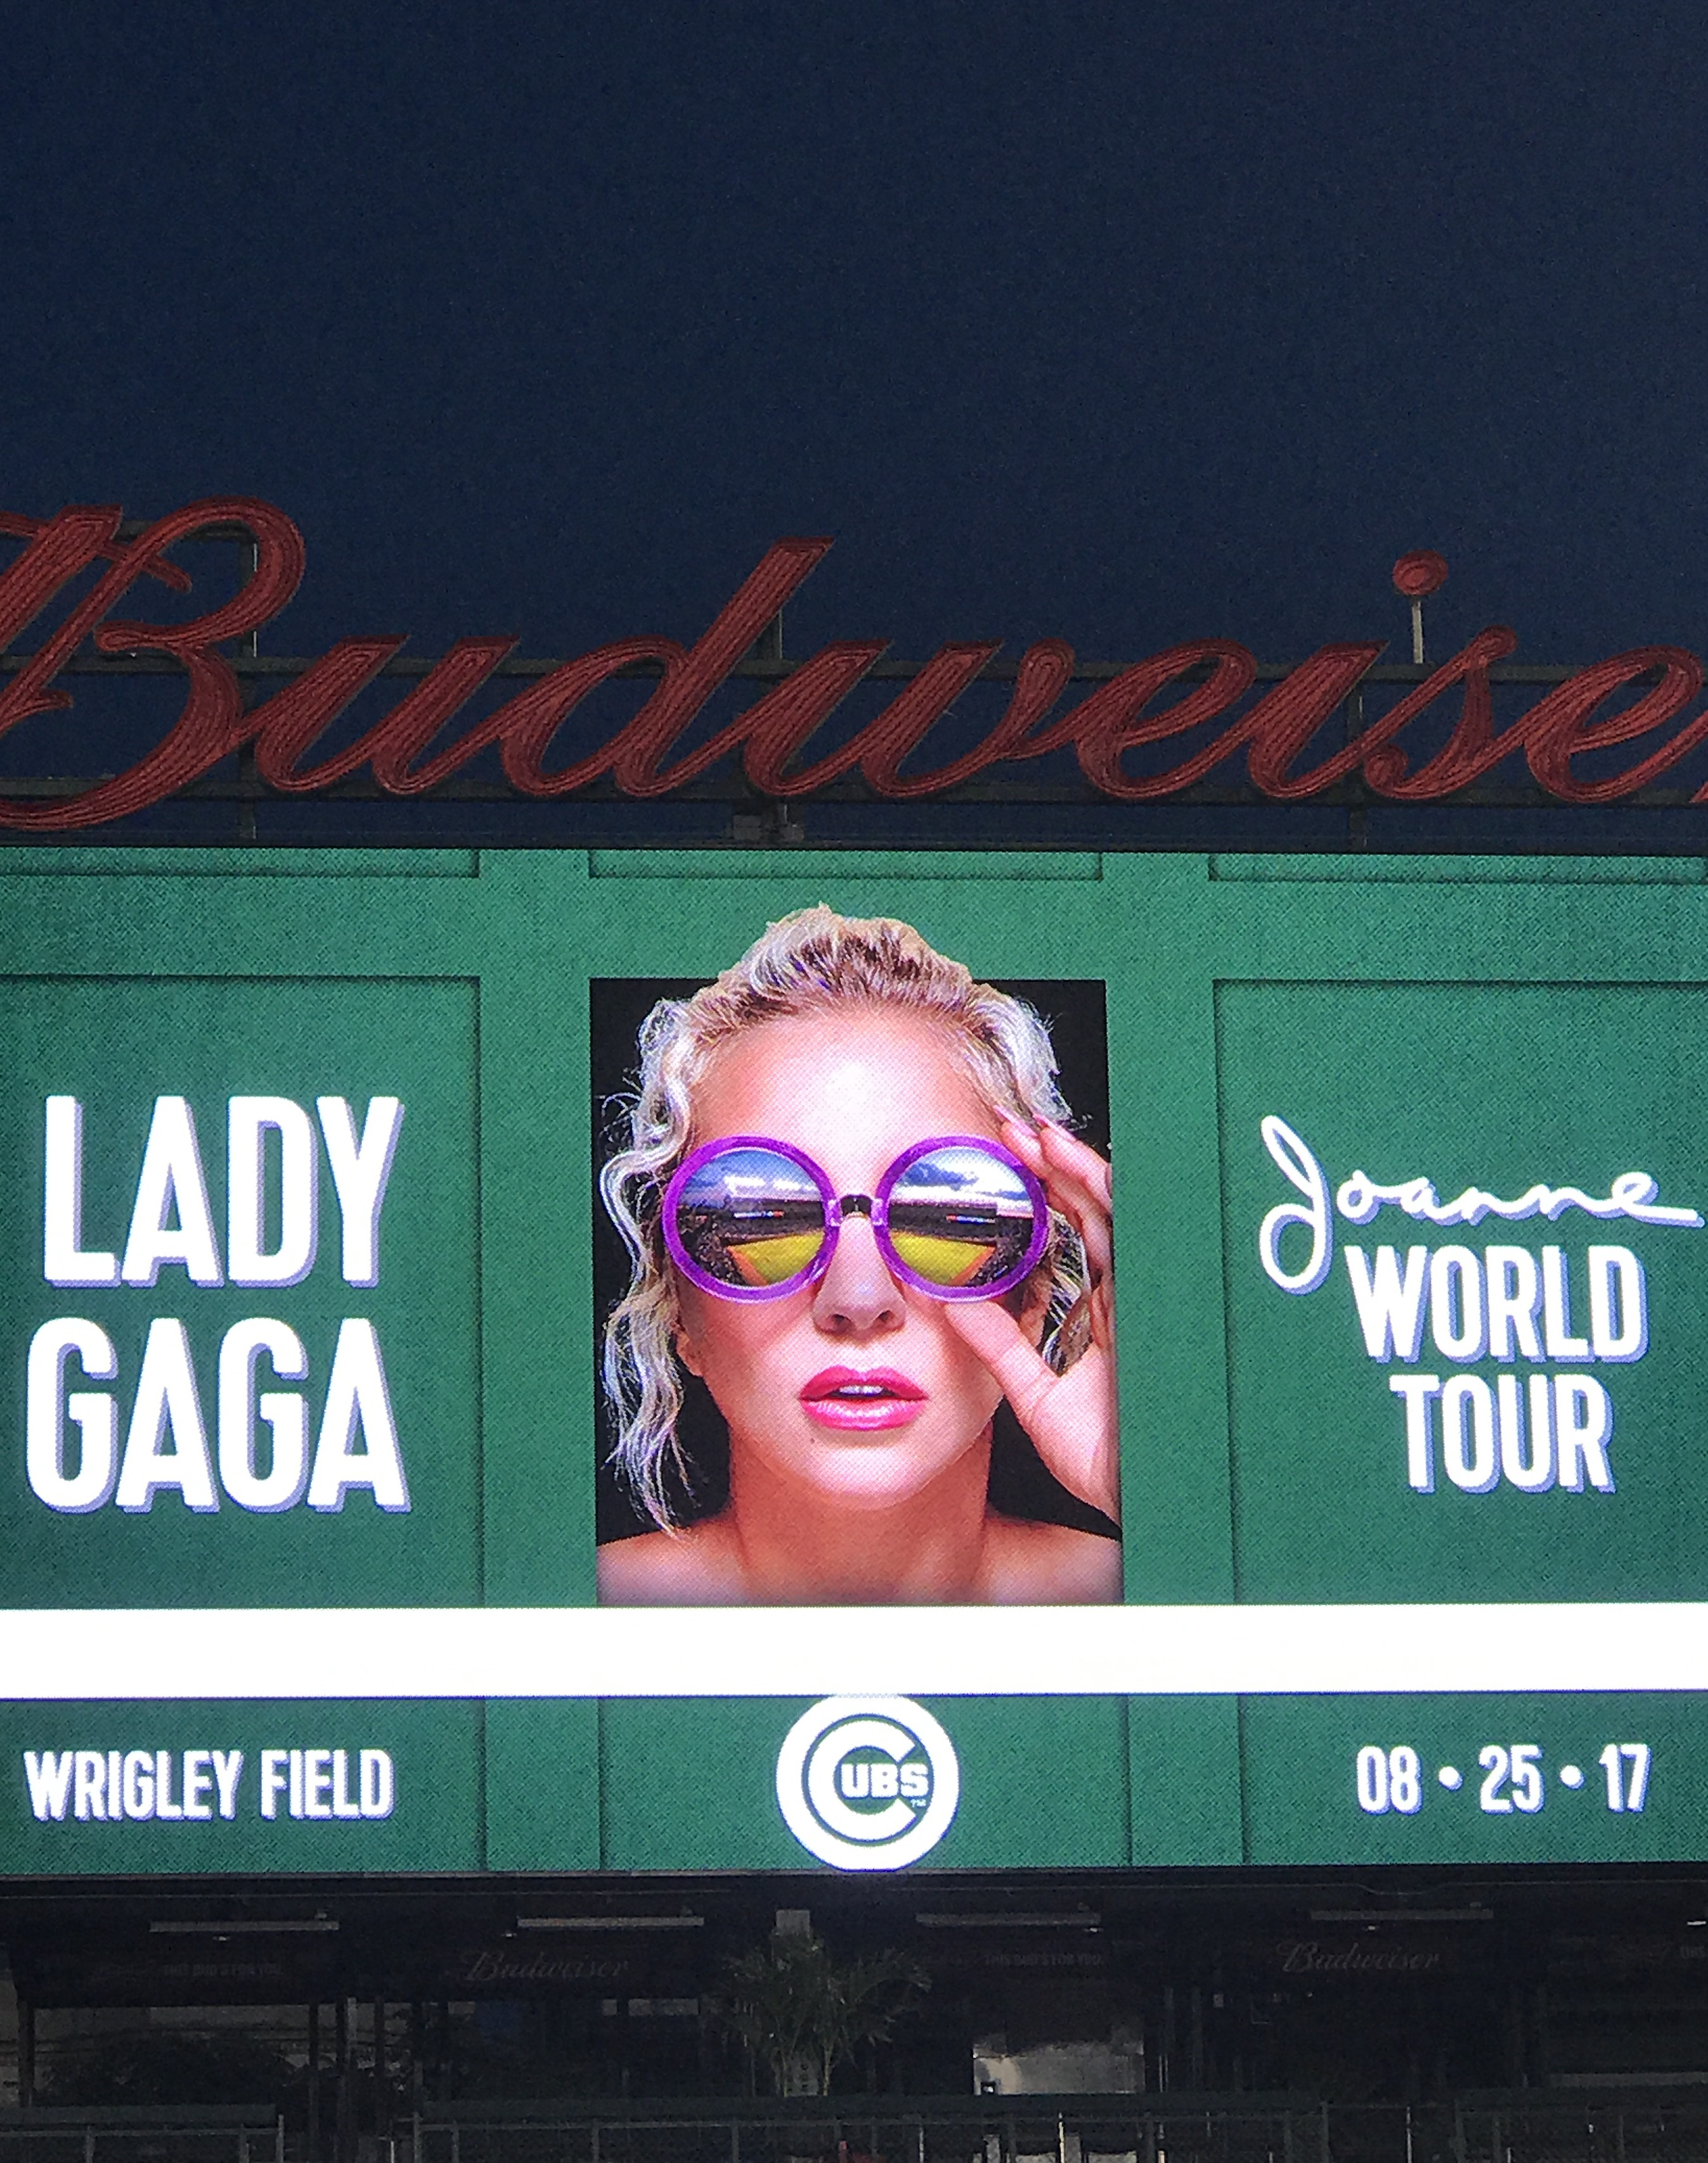 Lady Gaga at Wrigley Field